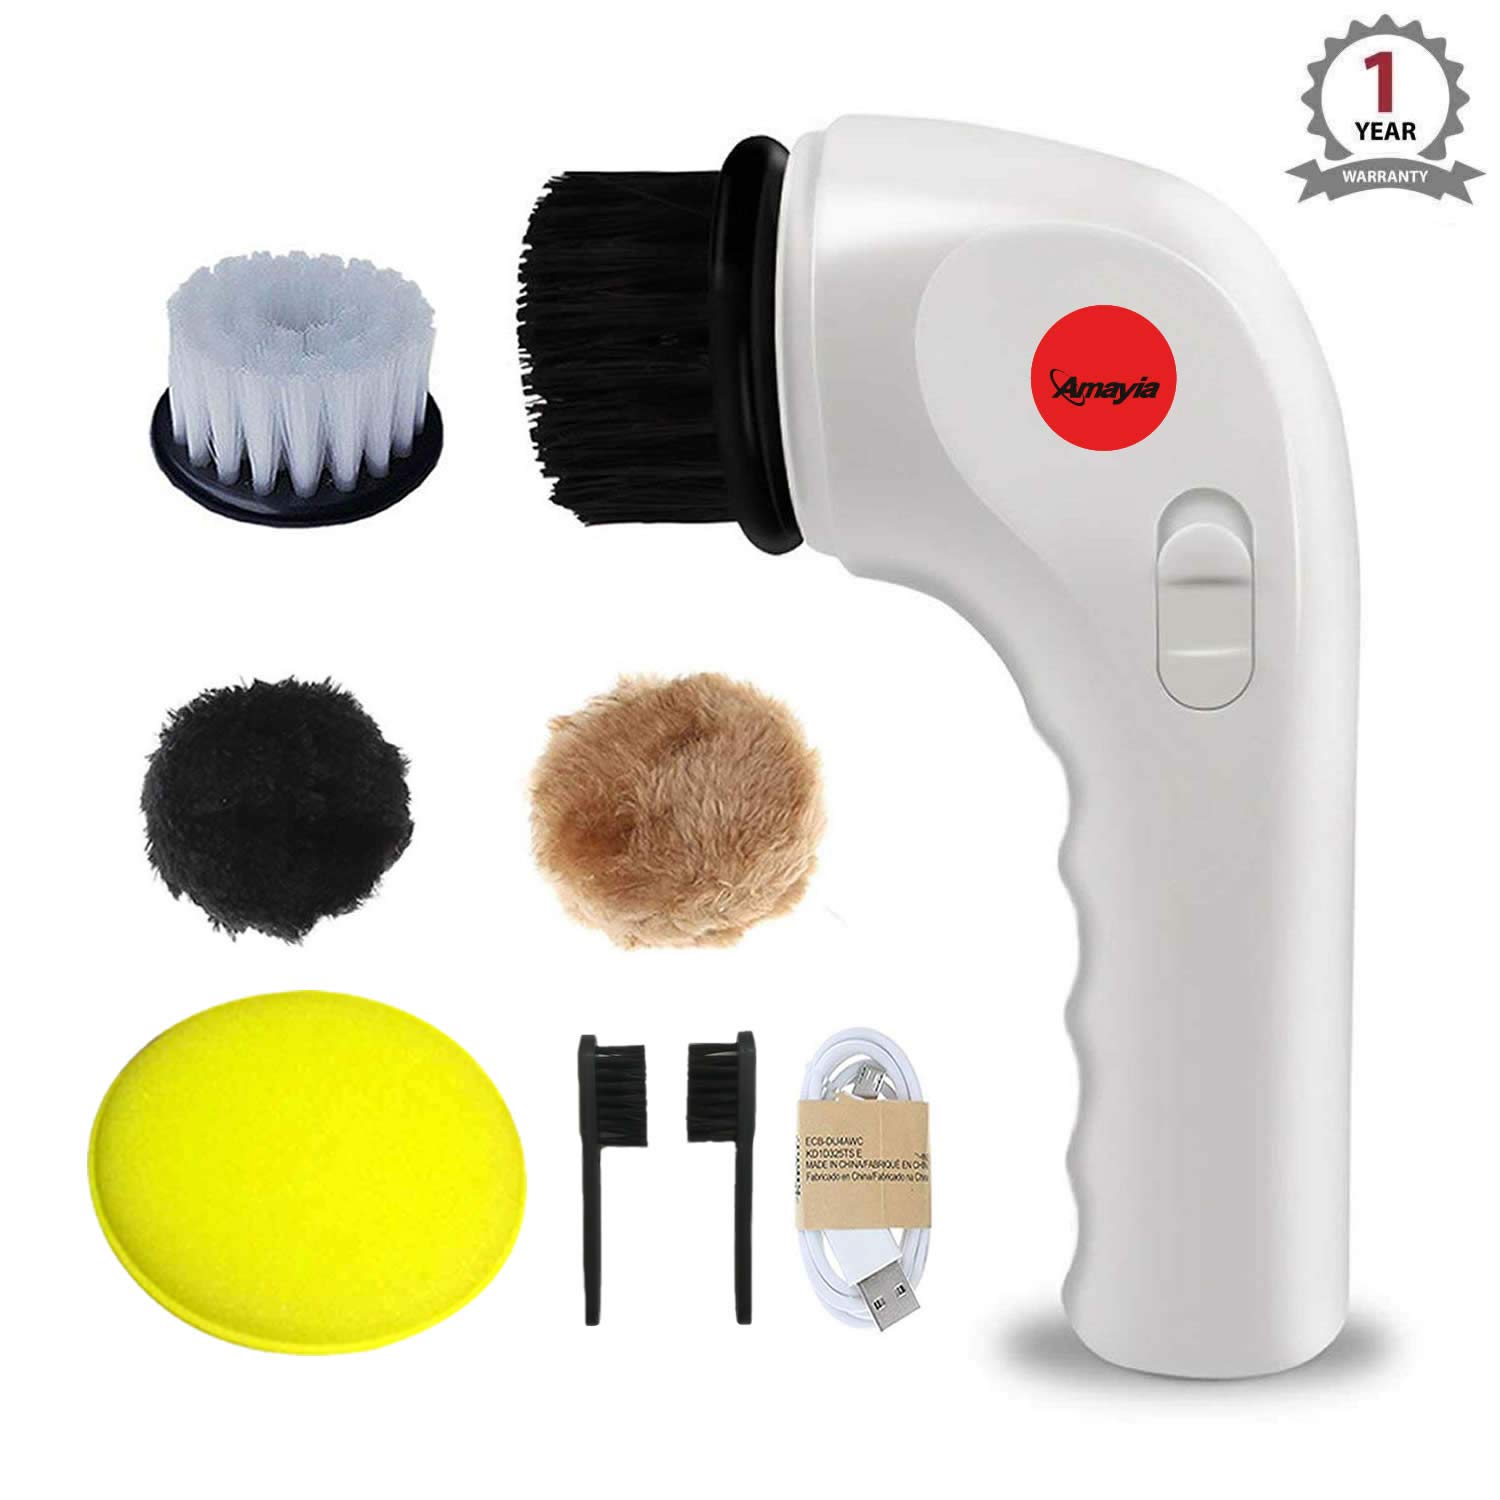 Portable Electric Clean Polisher, Amayia Handheld Automatic Electric Shoe Brush Shine Polisher with USB Interface, Electric Cleaning Tool Brush for Leather, Bag, Car Seat, Shoe, Dishes